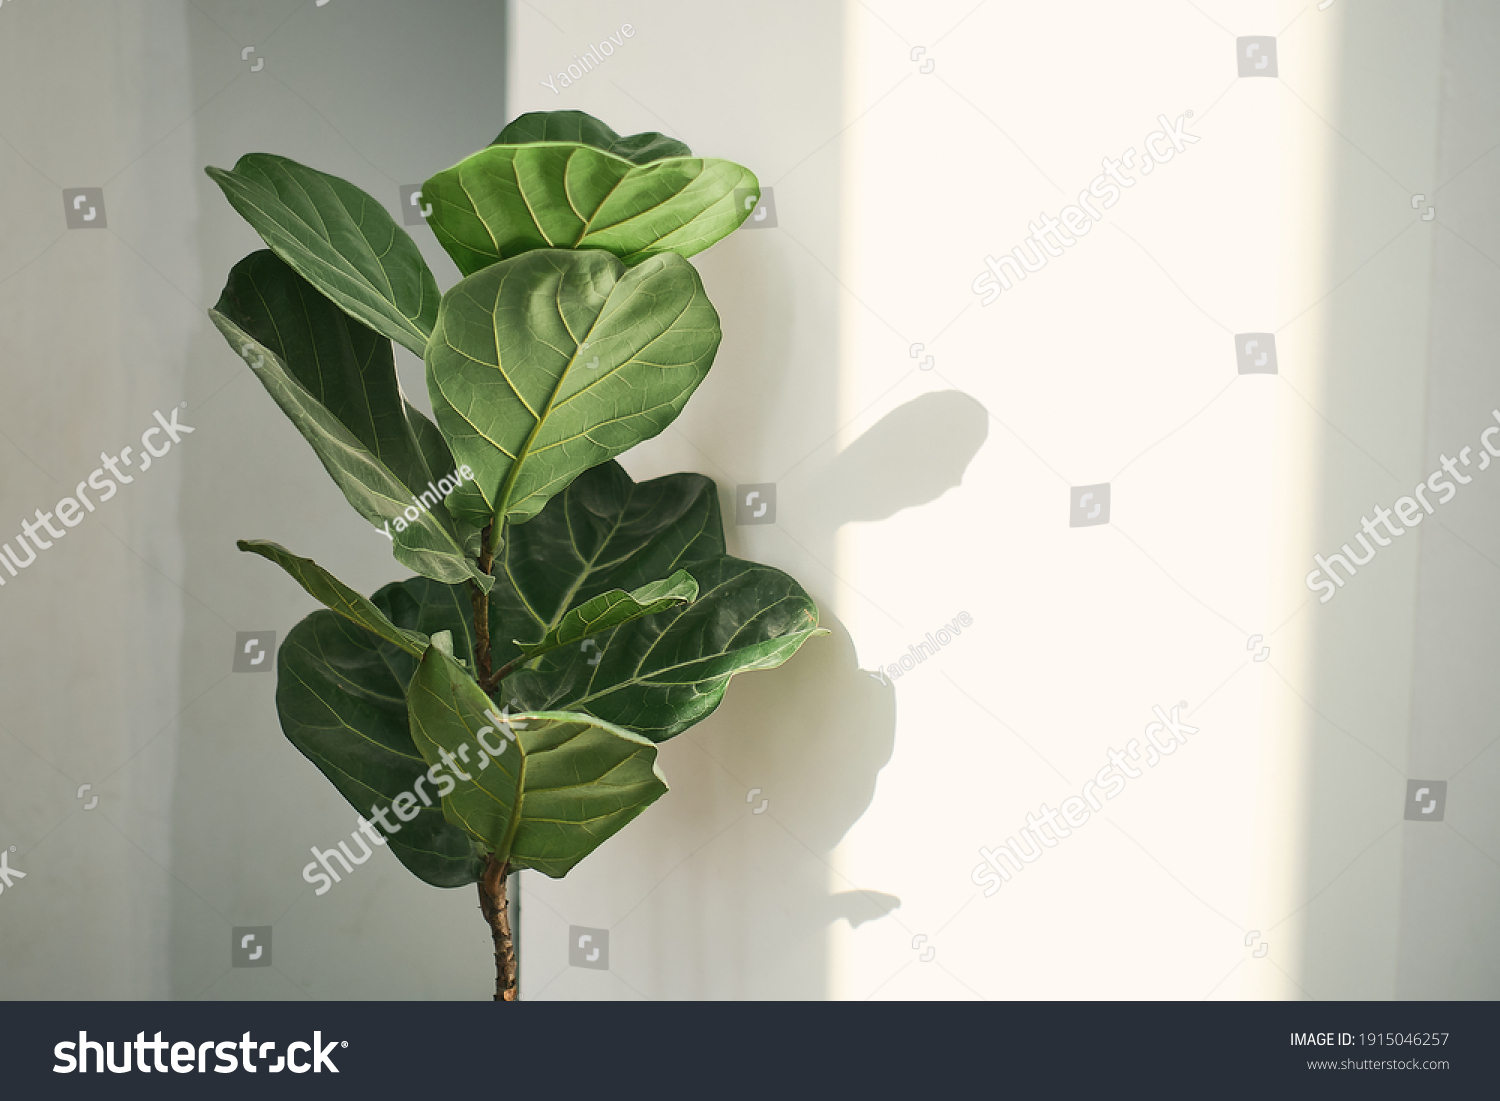 Green leaves of Fiddle Fig or Ficus Lyrata. Fiddle-leaf fig tree the popular ornamental tropical houseplant on white wall background,, Air purifying plants for home, Houseplants With Health Benefits #1915046257